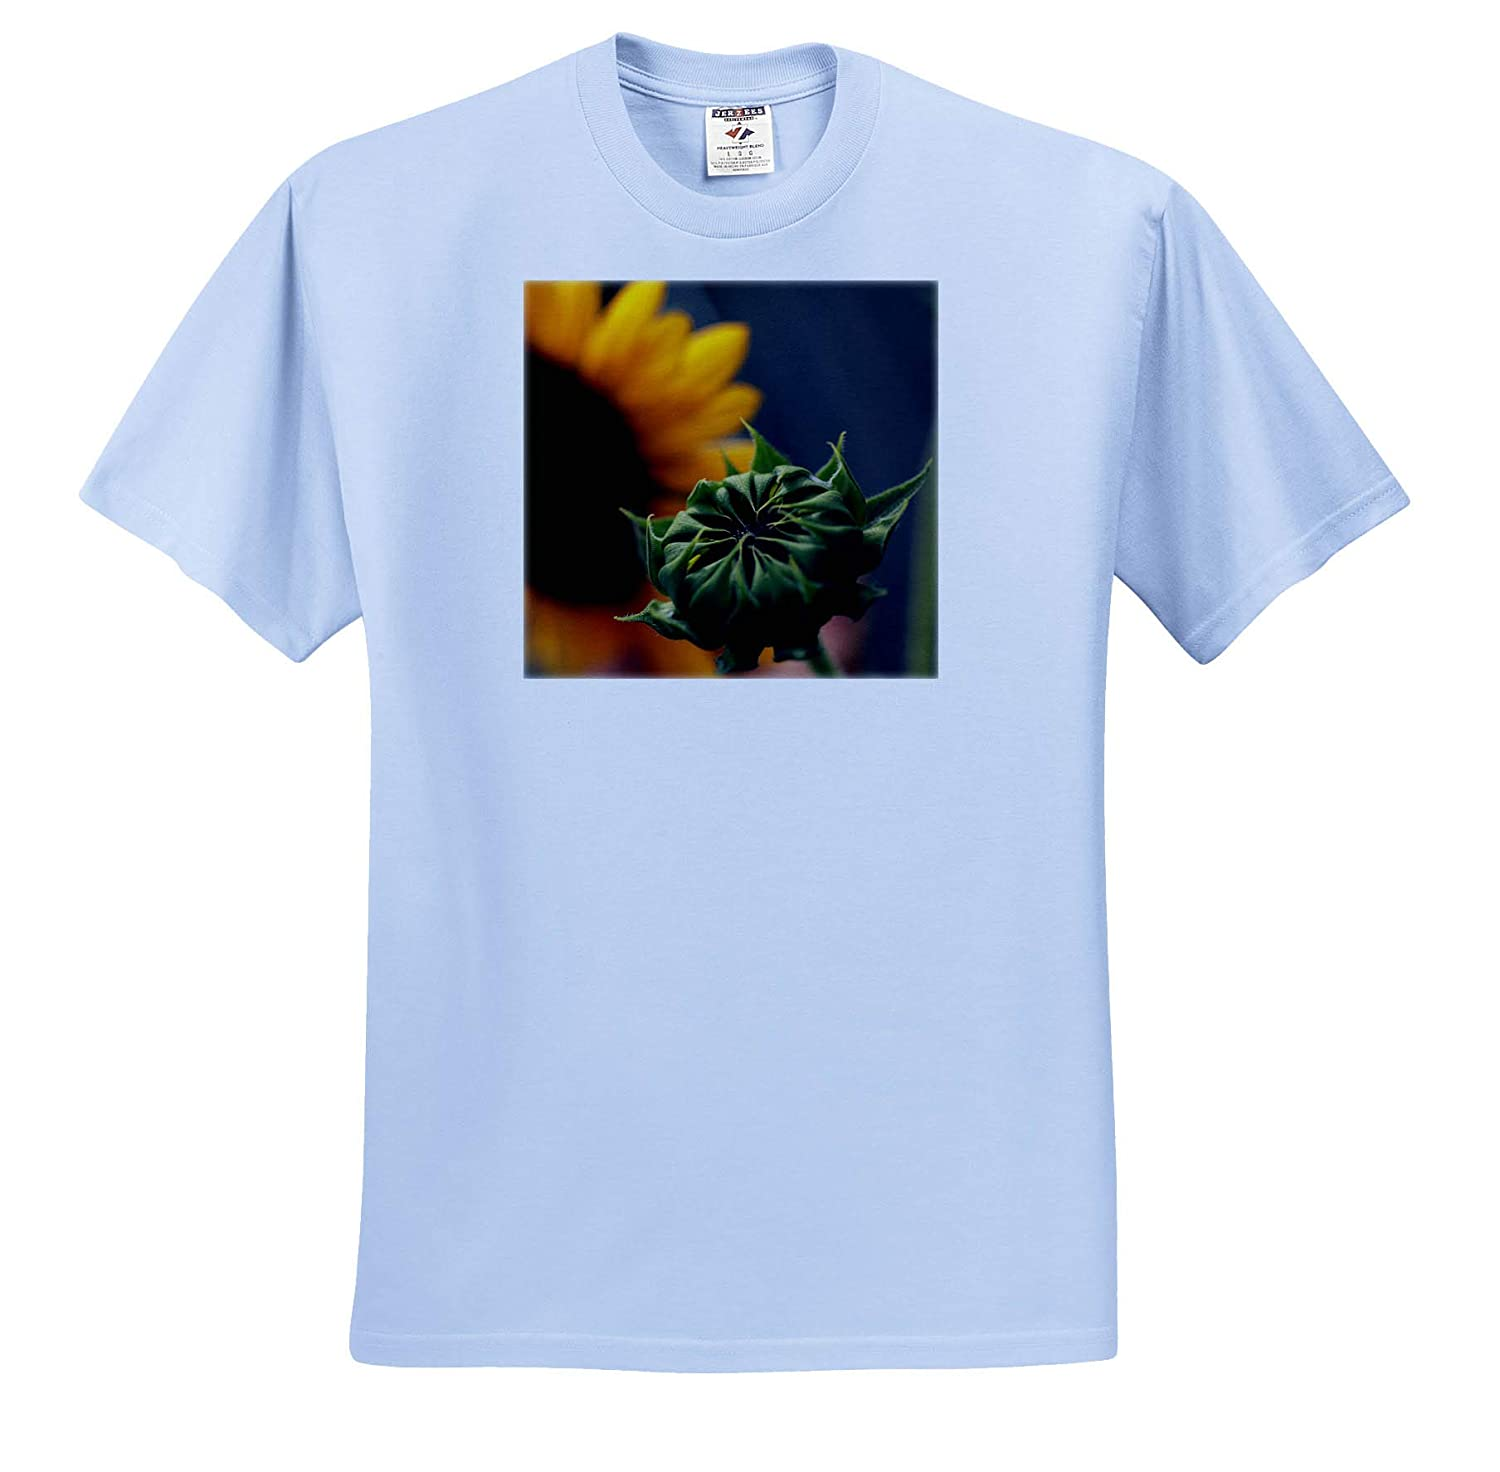 3dRose Stamp City Macro Photograph of a Closed Sunflower Waiting to Open - Adult T-Shirt XL Flowers ts/_320176